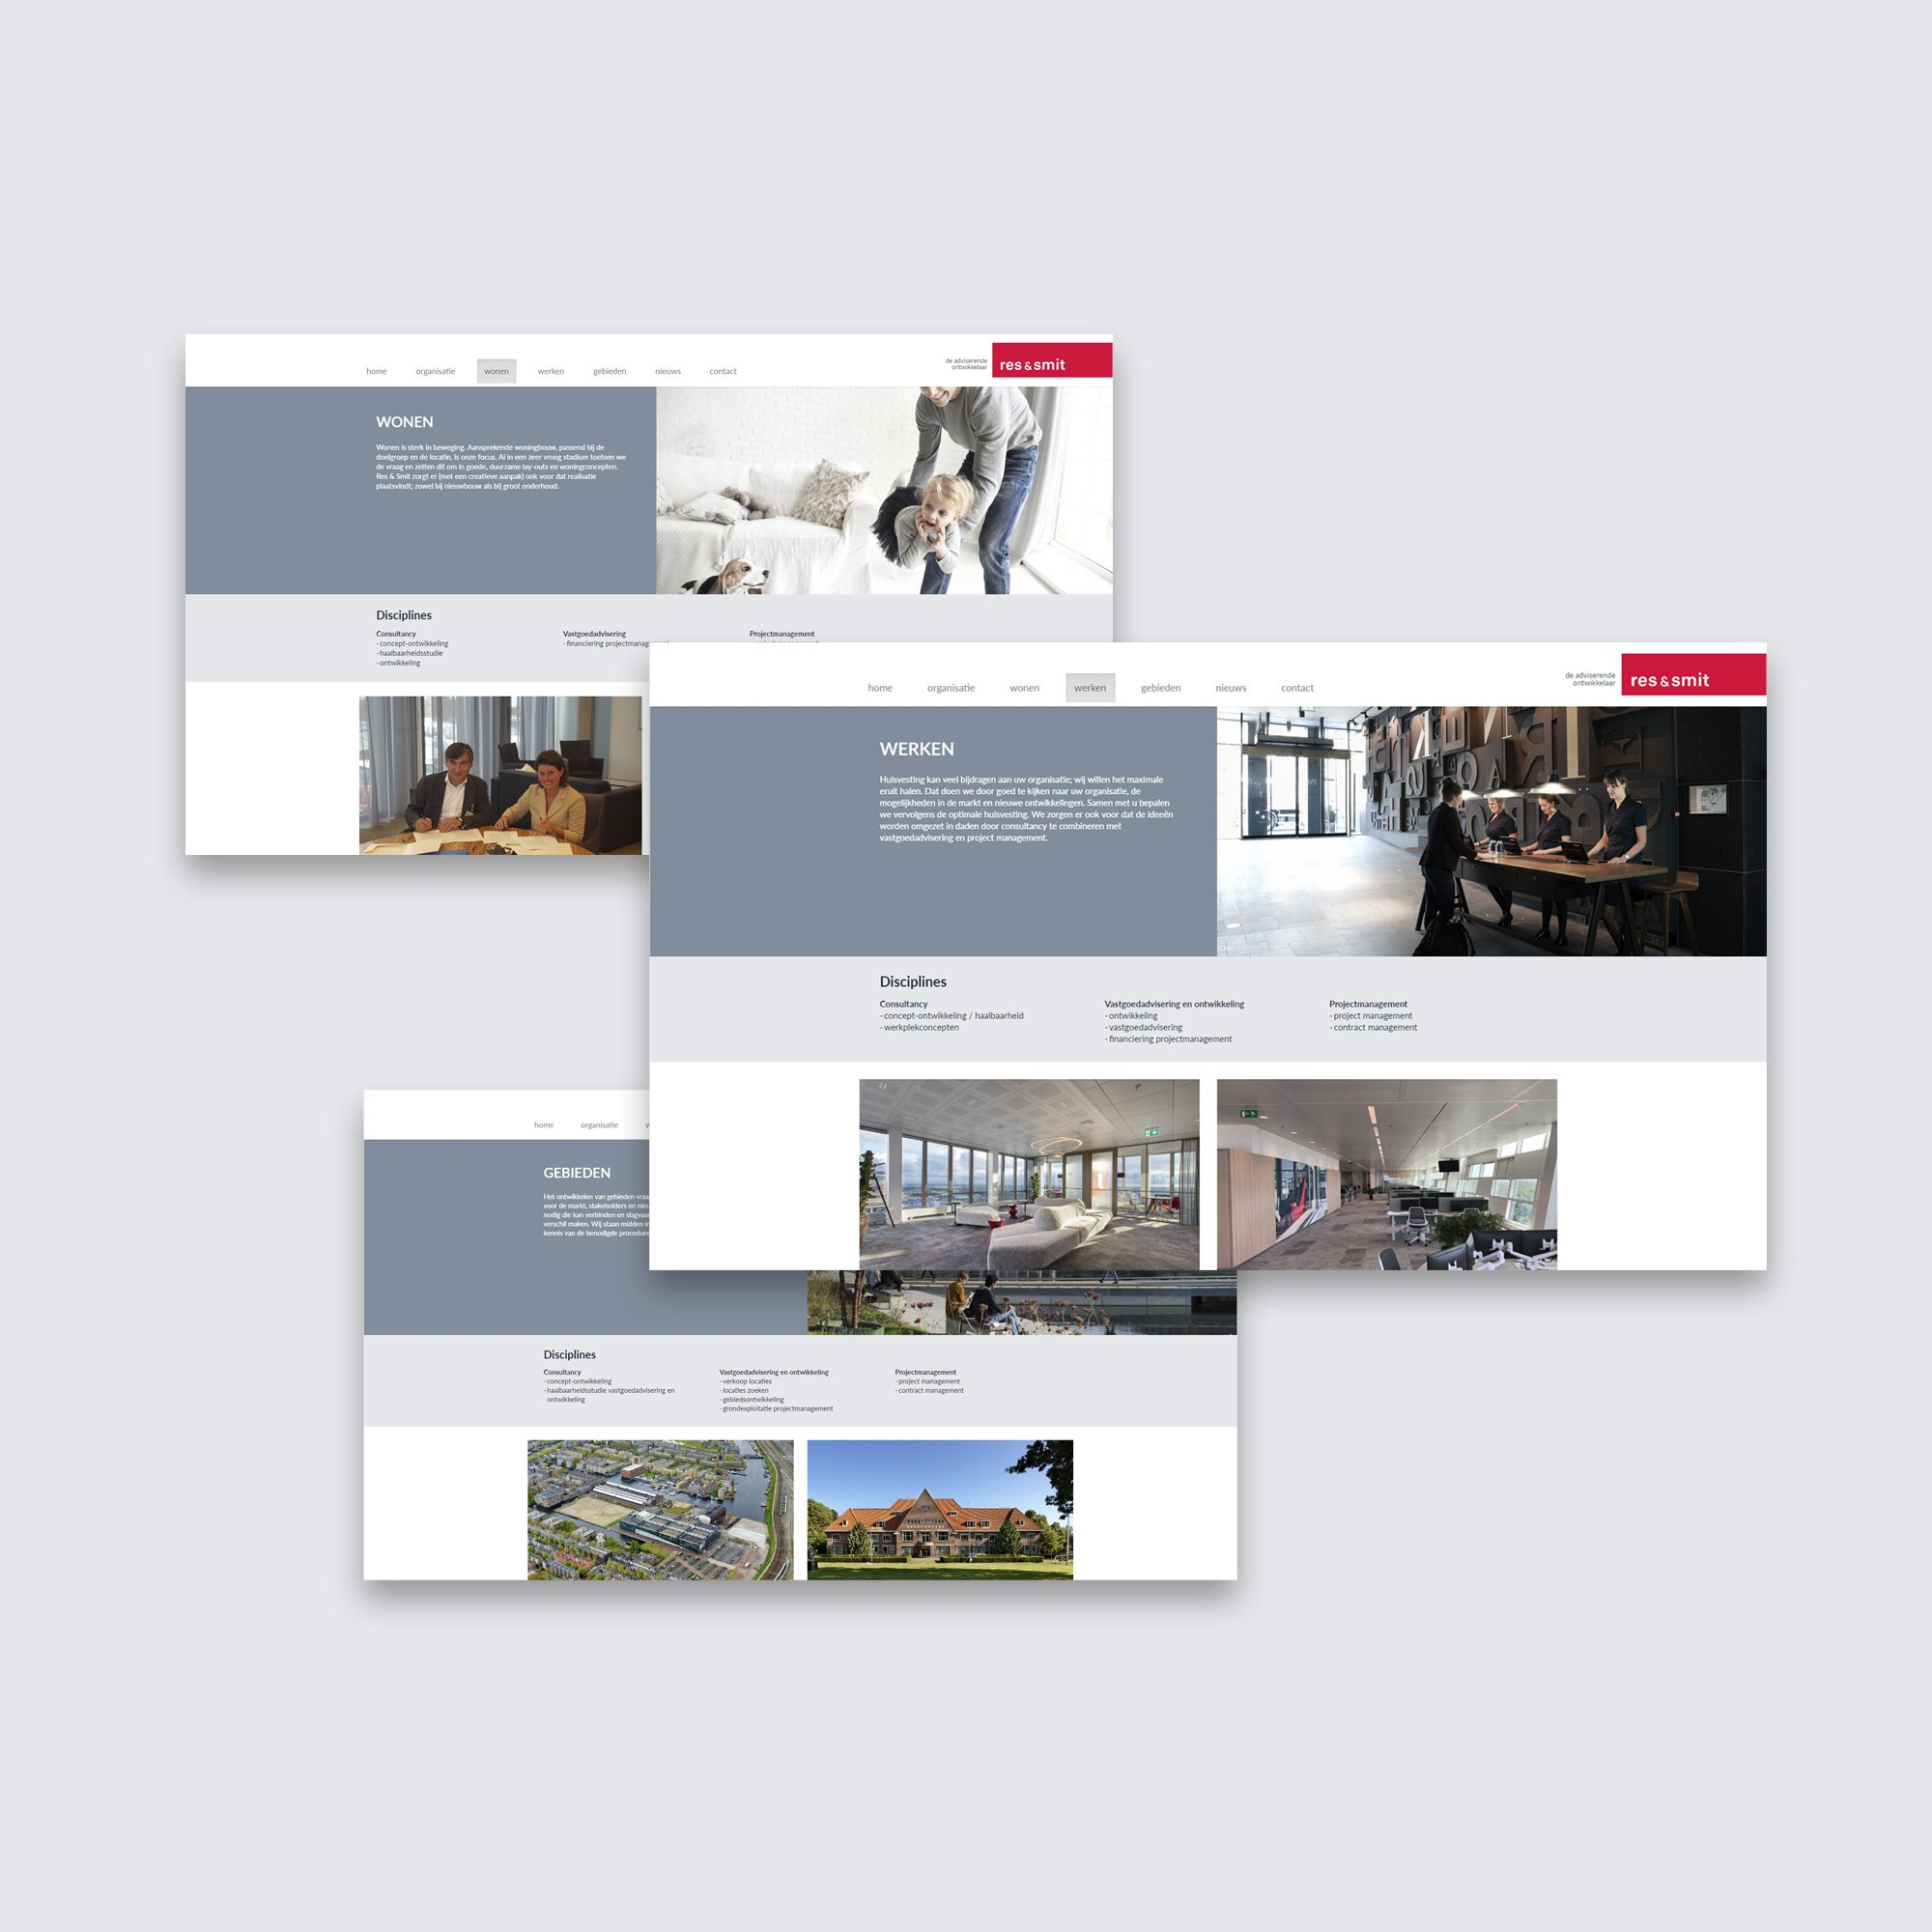 innovative-digital-amsterdam-webdesign-res_smit_website_05